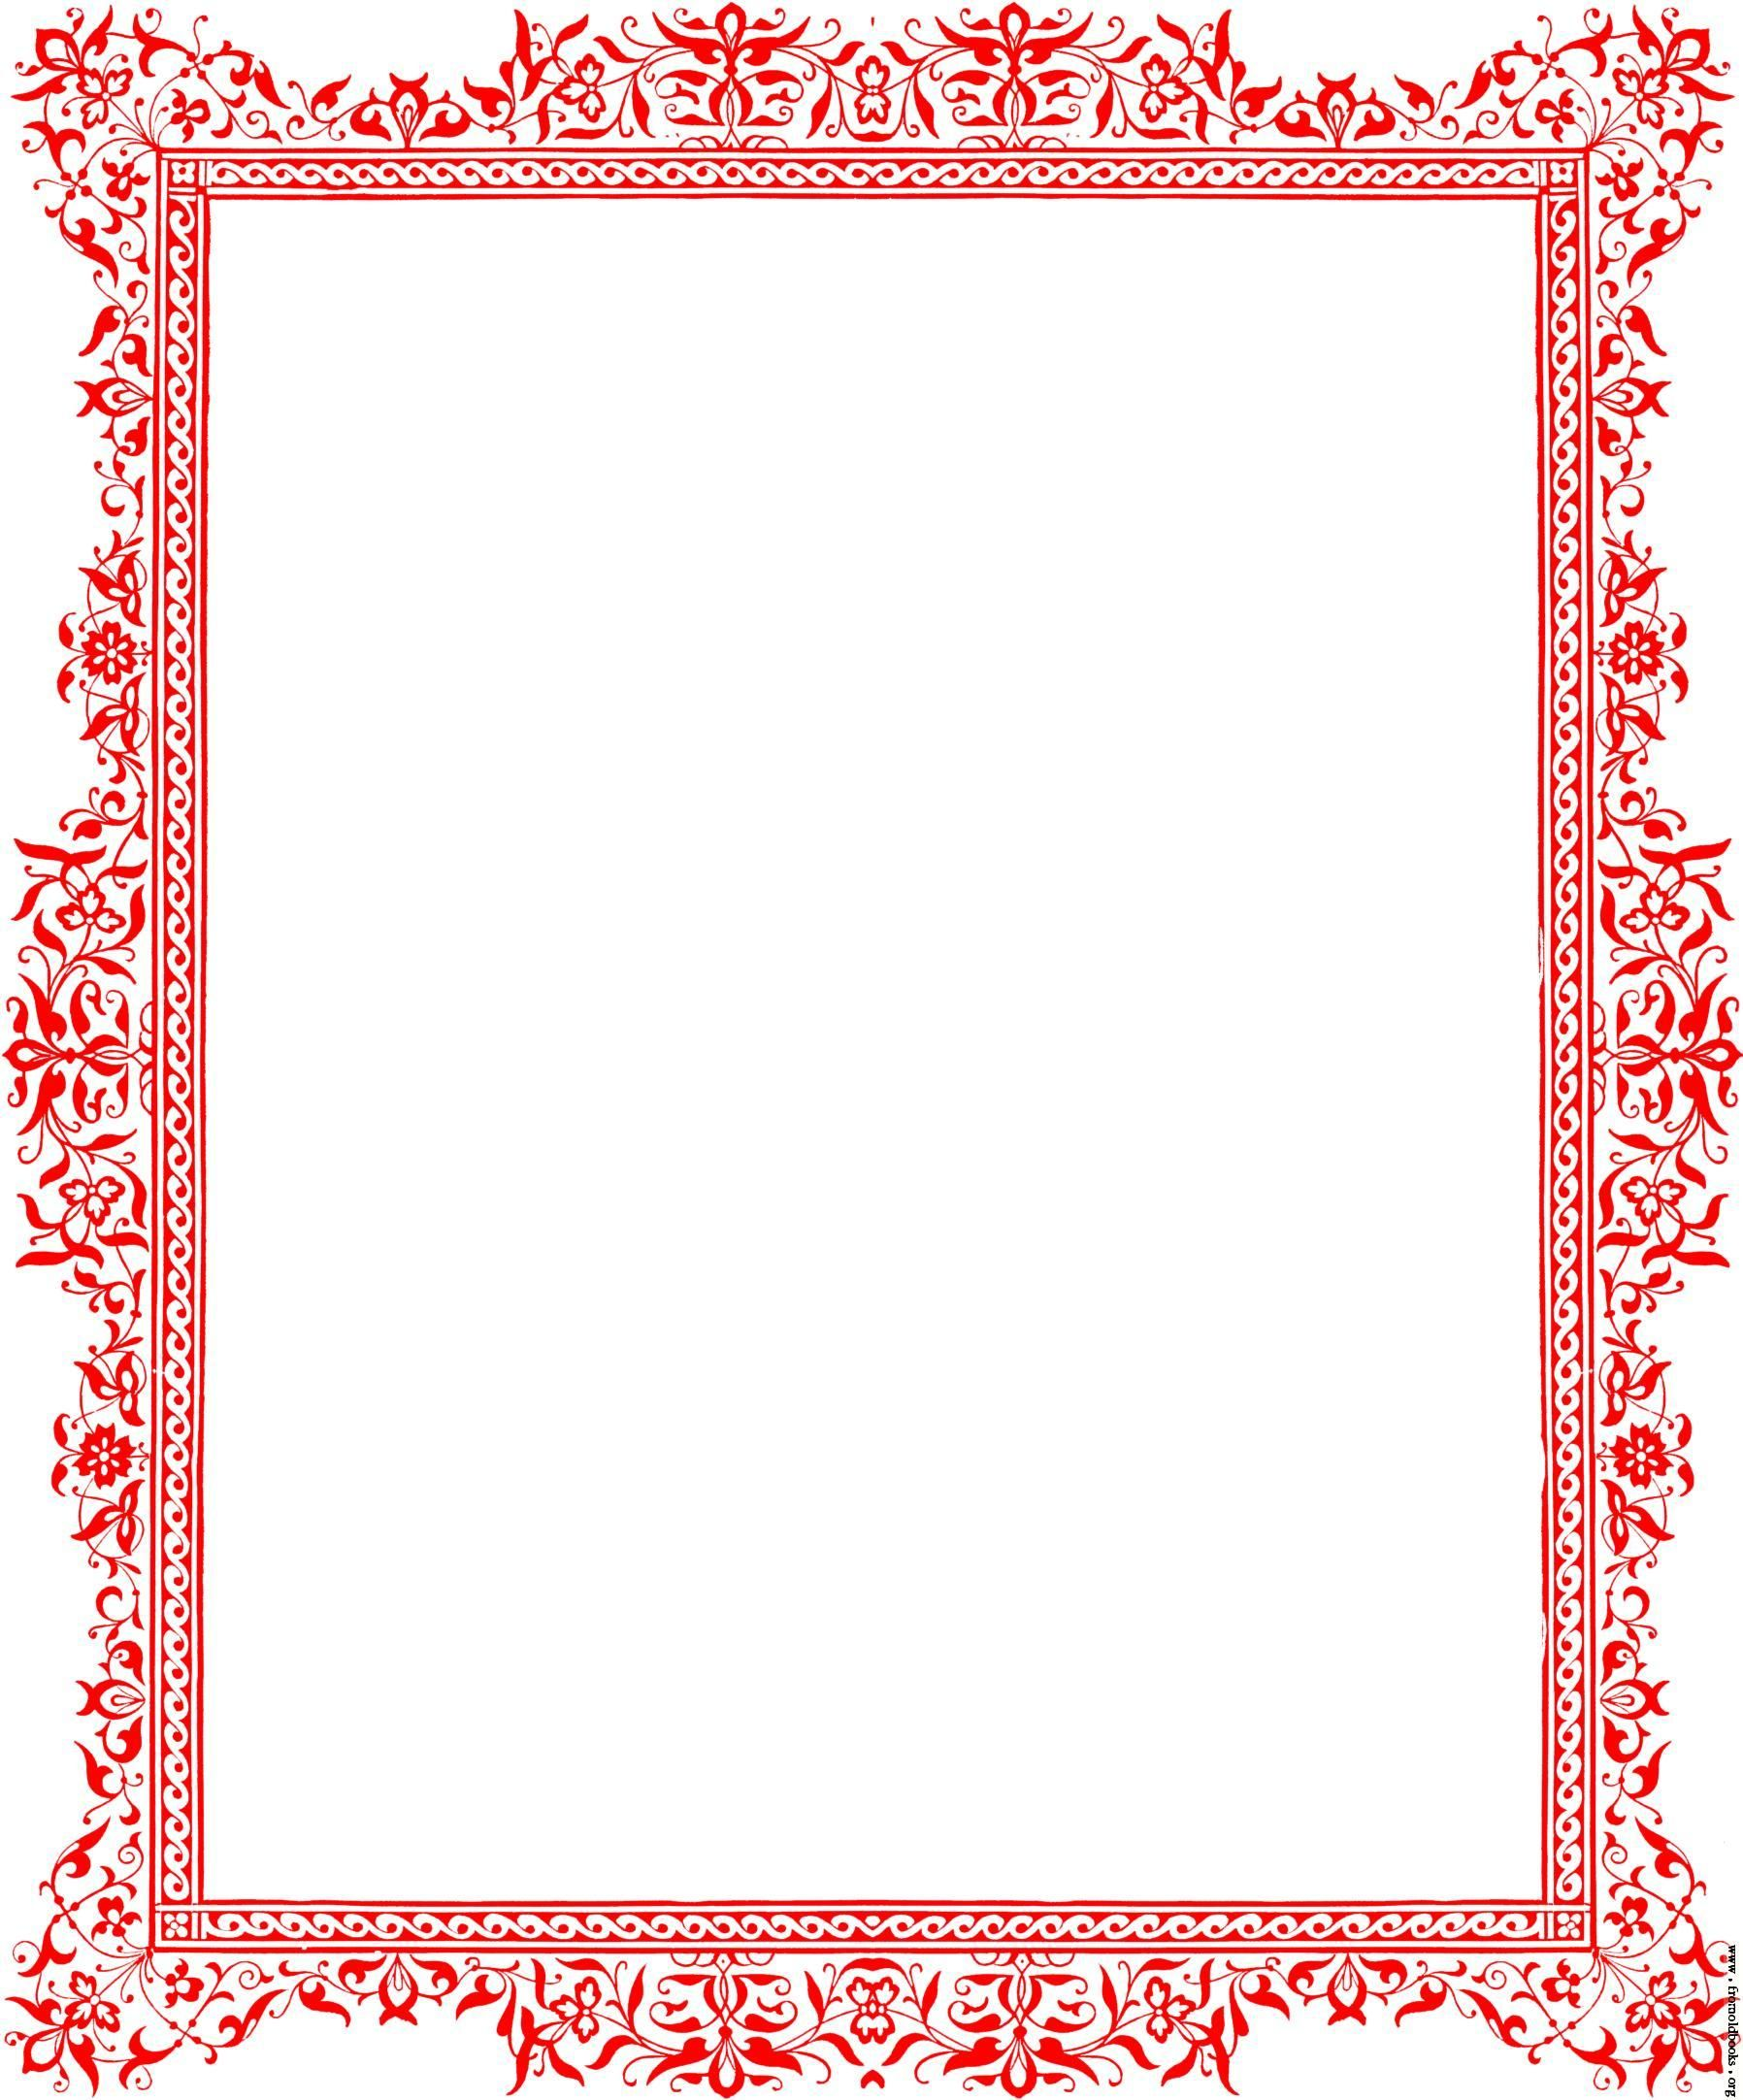 decorative backgrounds for word documents.